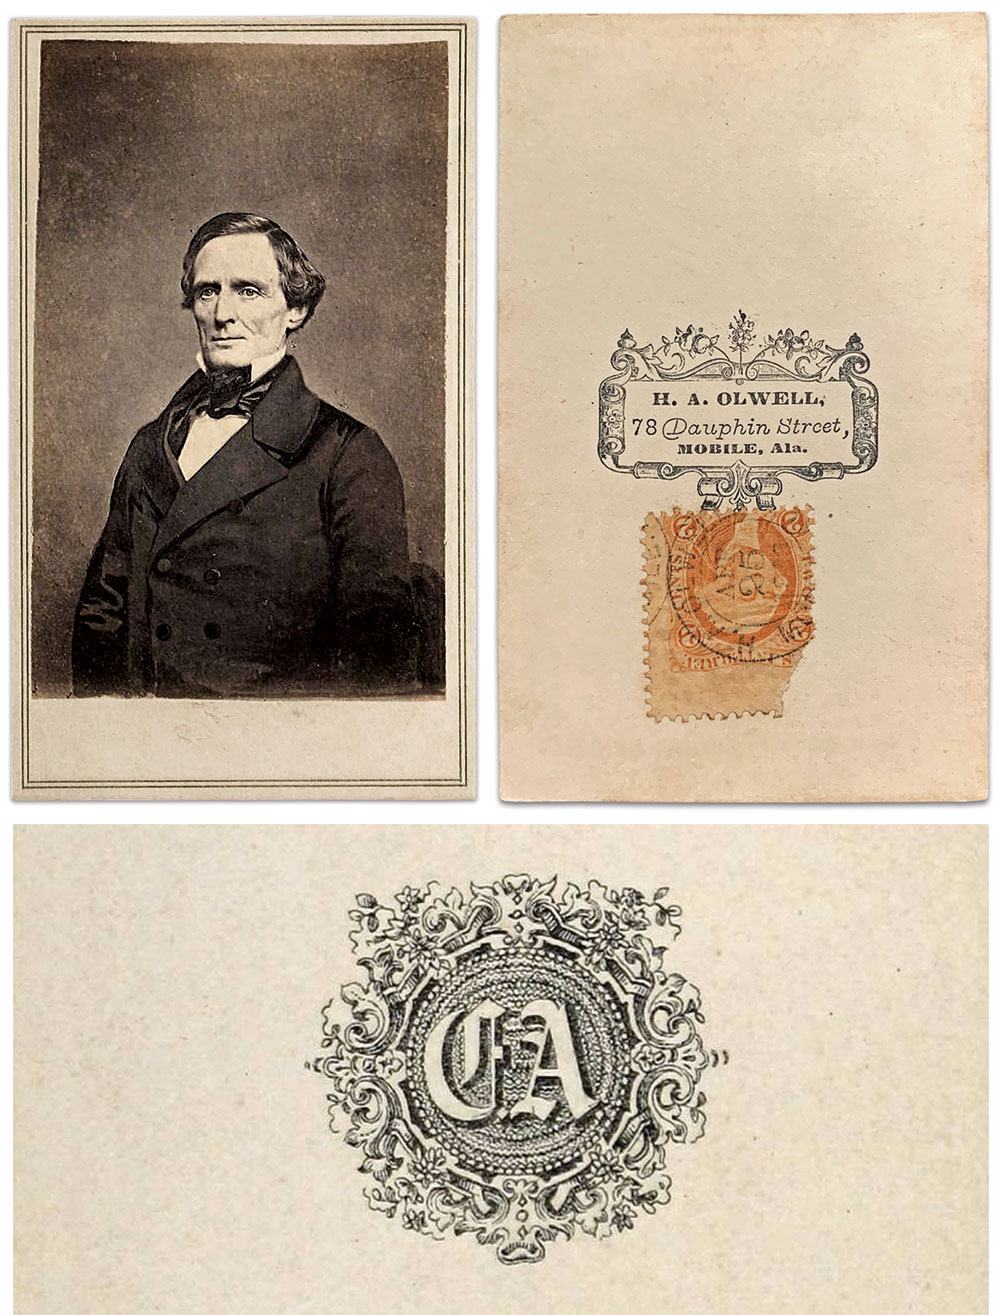 This carte de visite of President Jefferson Davis should have had an Anthony backmark similar to the example shown here. It is, however, attached to a mount with a Mobile, Ala., backmark. This is a professional remount job, not the amateur work of some guy in his bedroom. I'm impressed with the quality of this fakery, and angry that it was done.